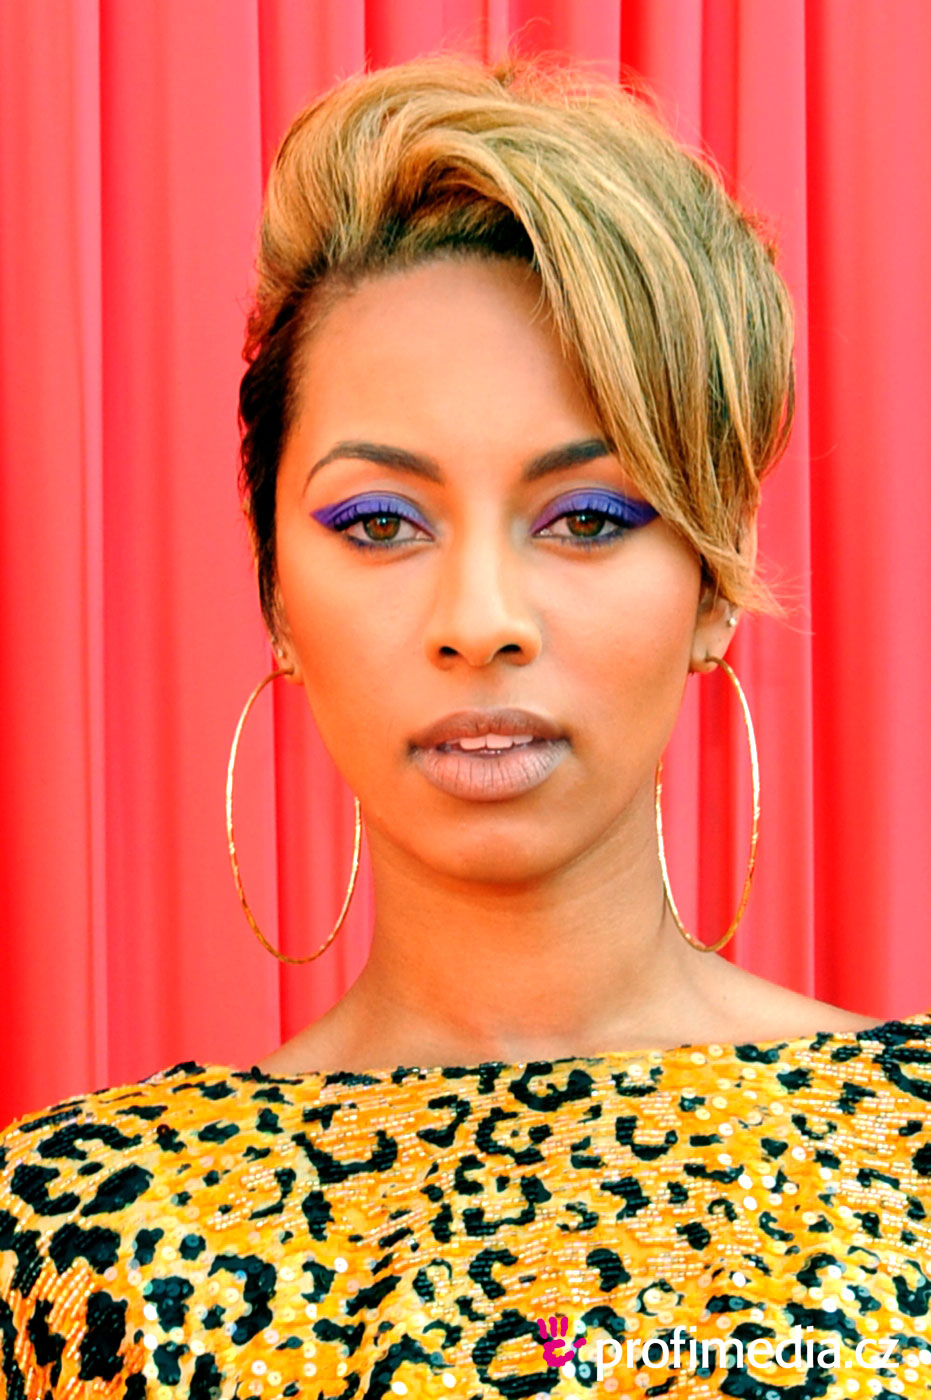 Miraculous Keri Hilson Hairstyle Easyhairstyler Short Hairstyles For Black Women Fulllsitofus